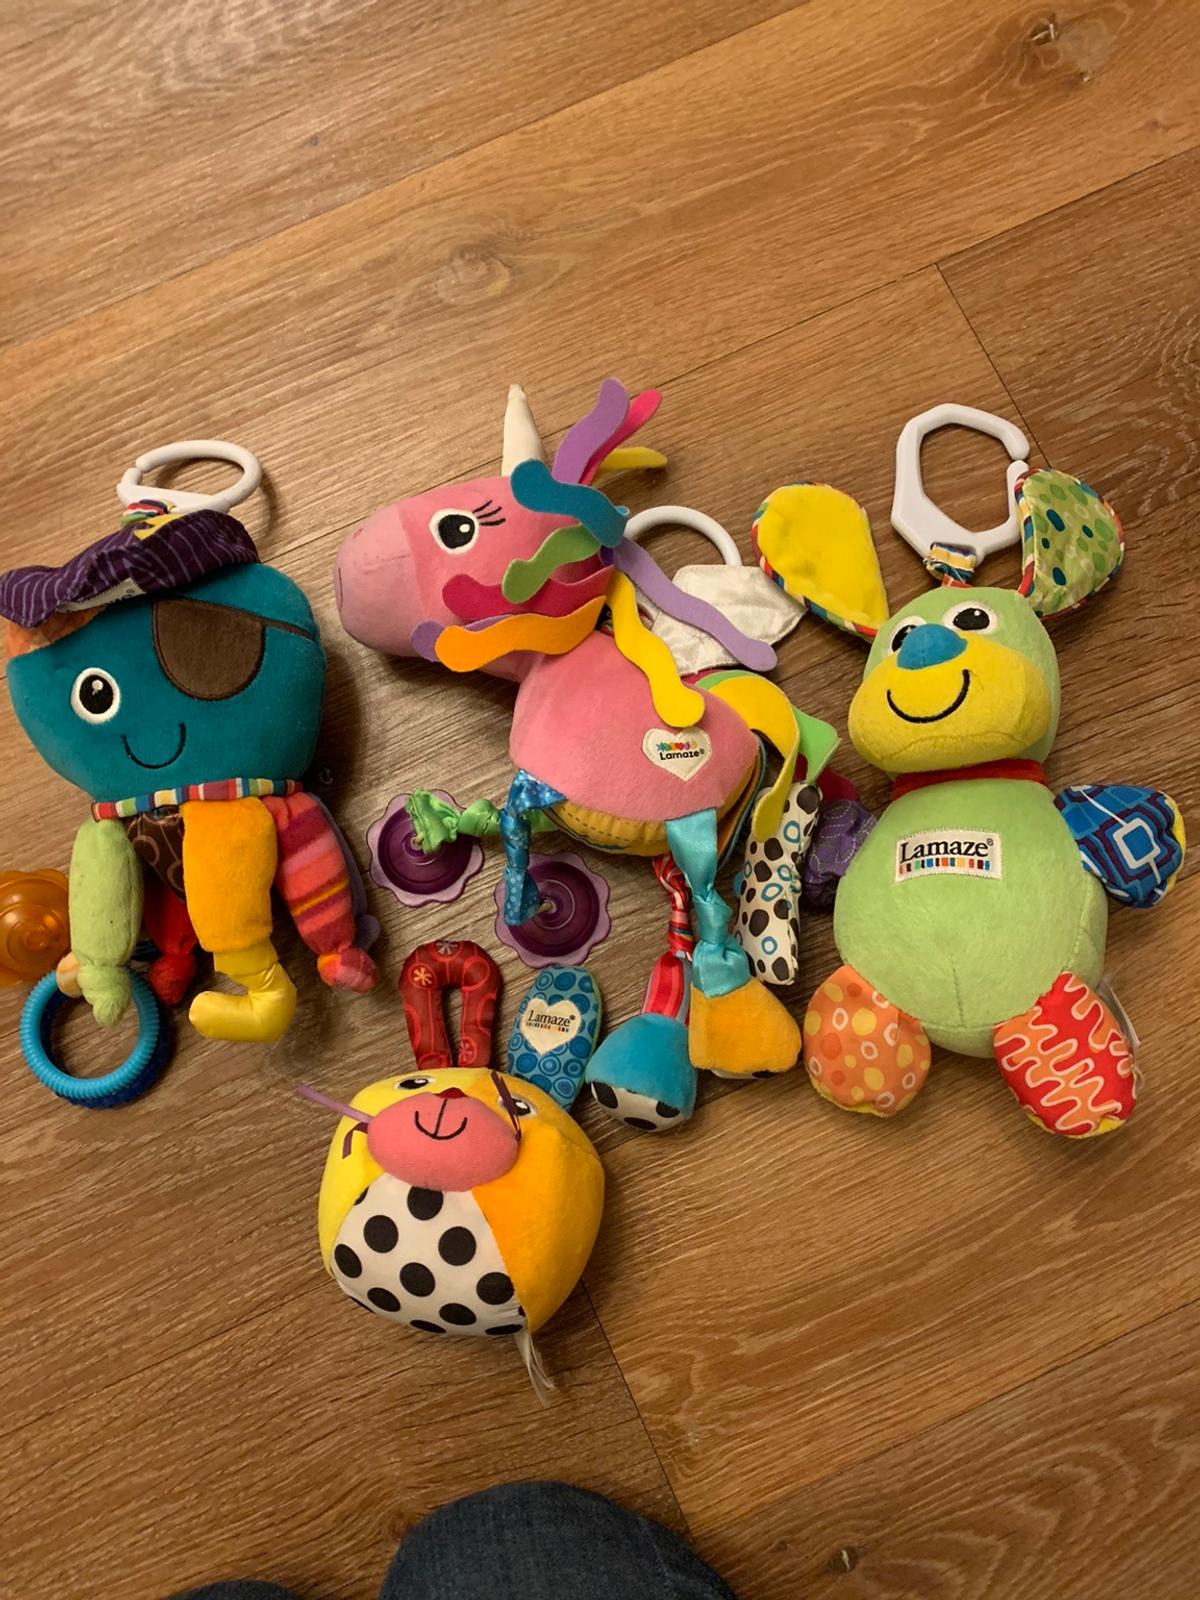 Lamaze Toy Bundle In Cv34 Warwick For 20 00 For Sale Shpock